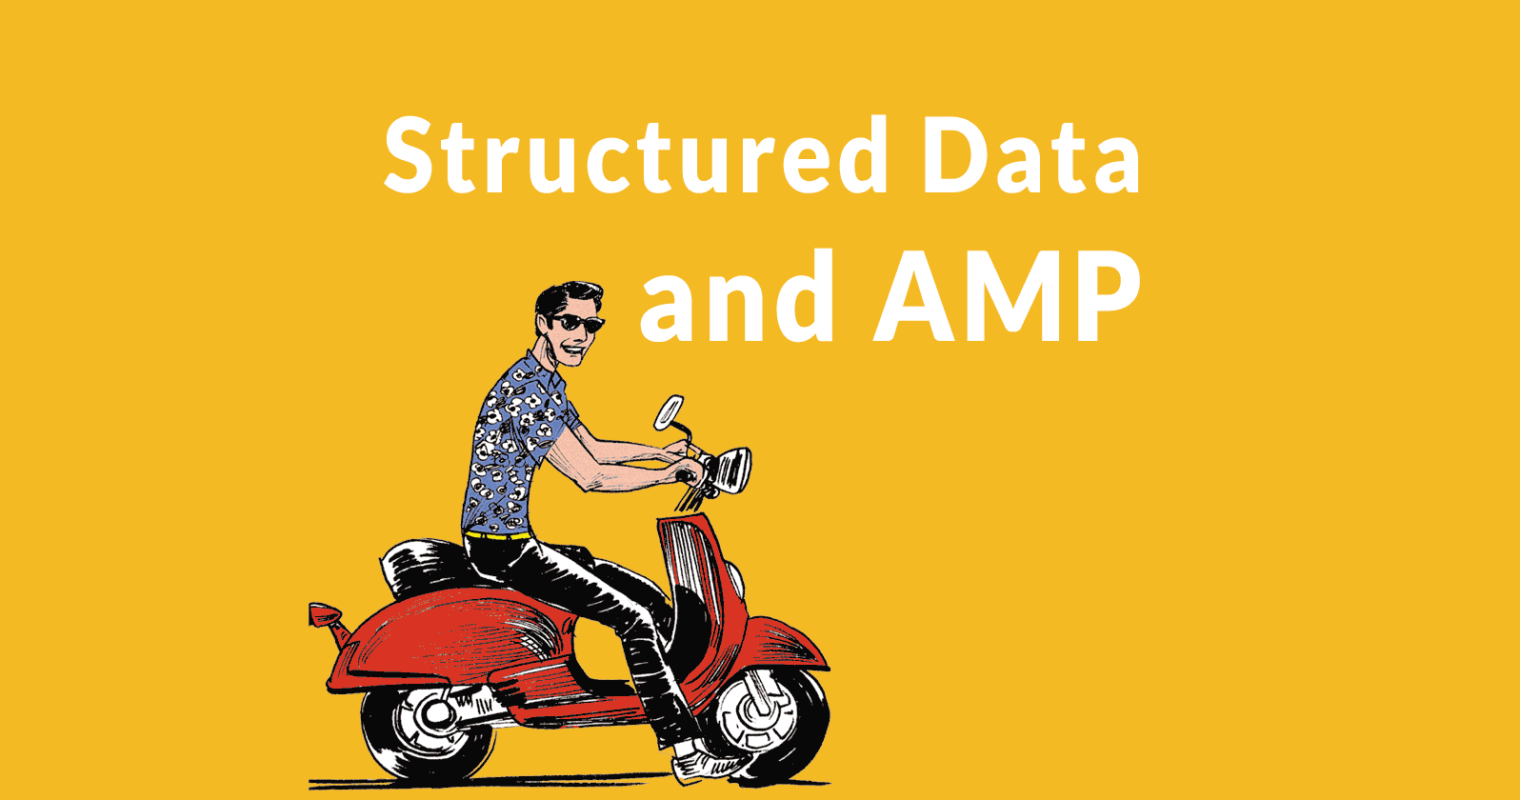 It's OK if Structured Data From Desktop Version is Missing from AMP